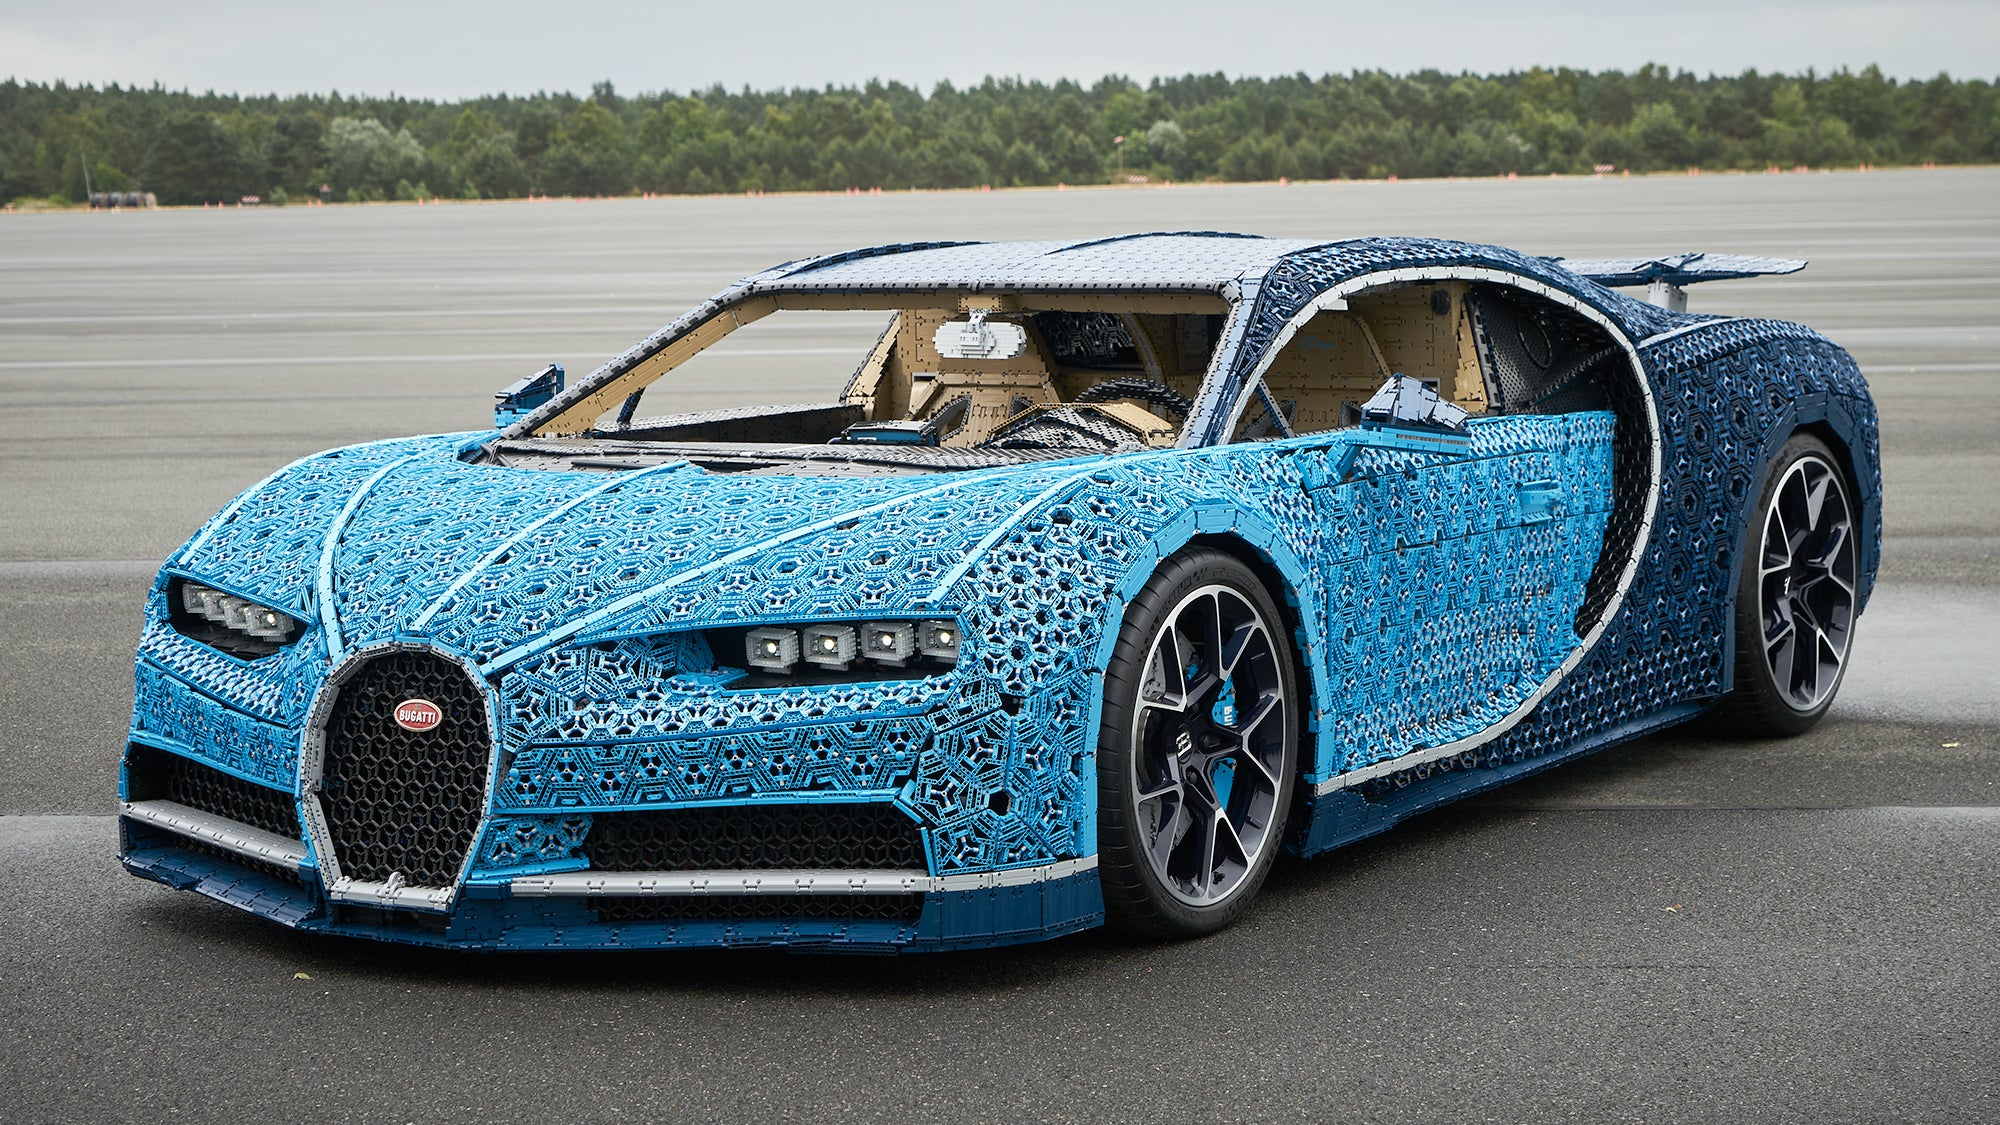 Marvel At This Drivable Bugatti Chiron, Built From A Million LEGO Pieces And 2304 Electric Toy Motors